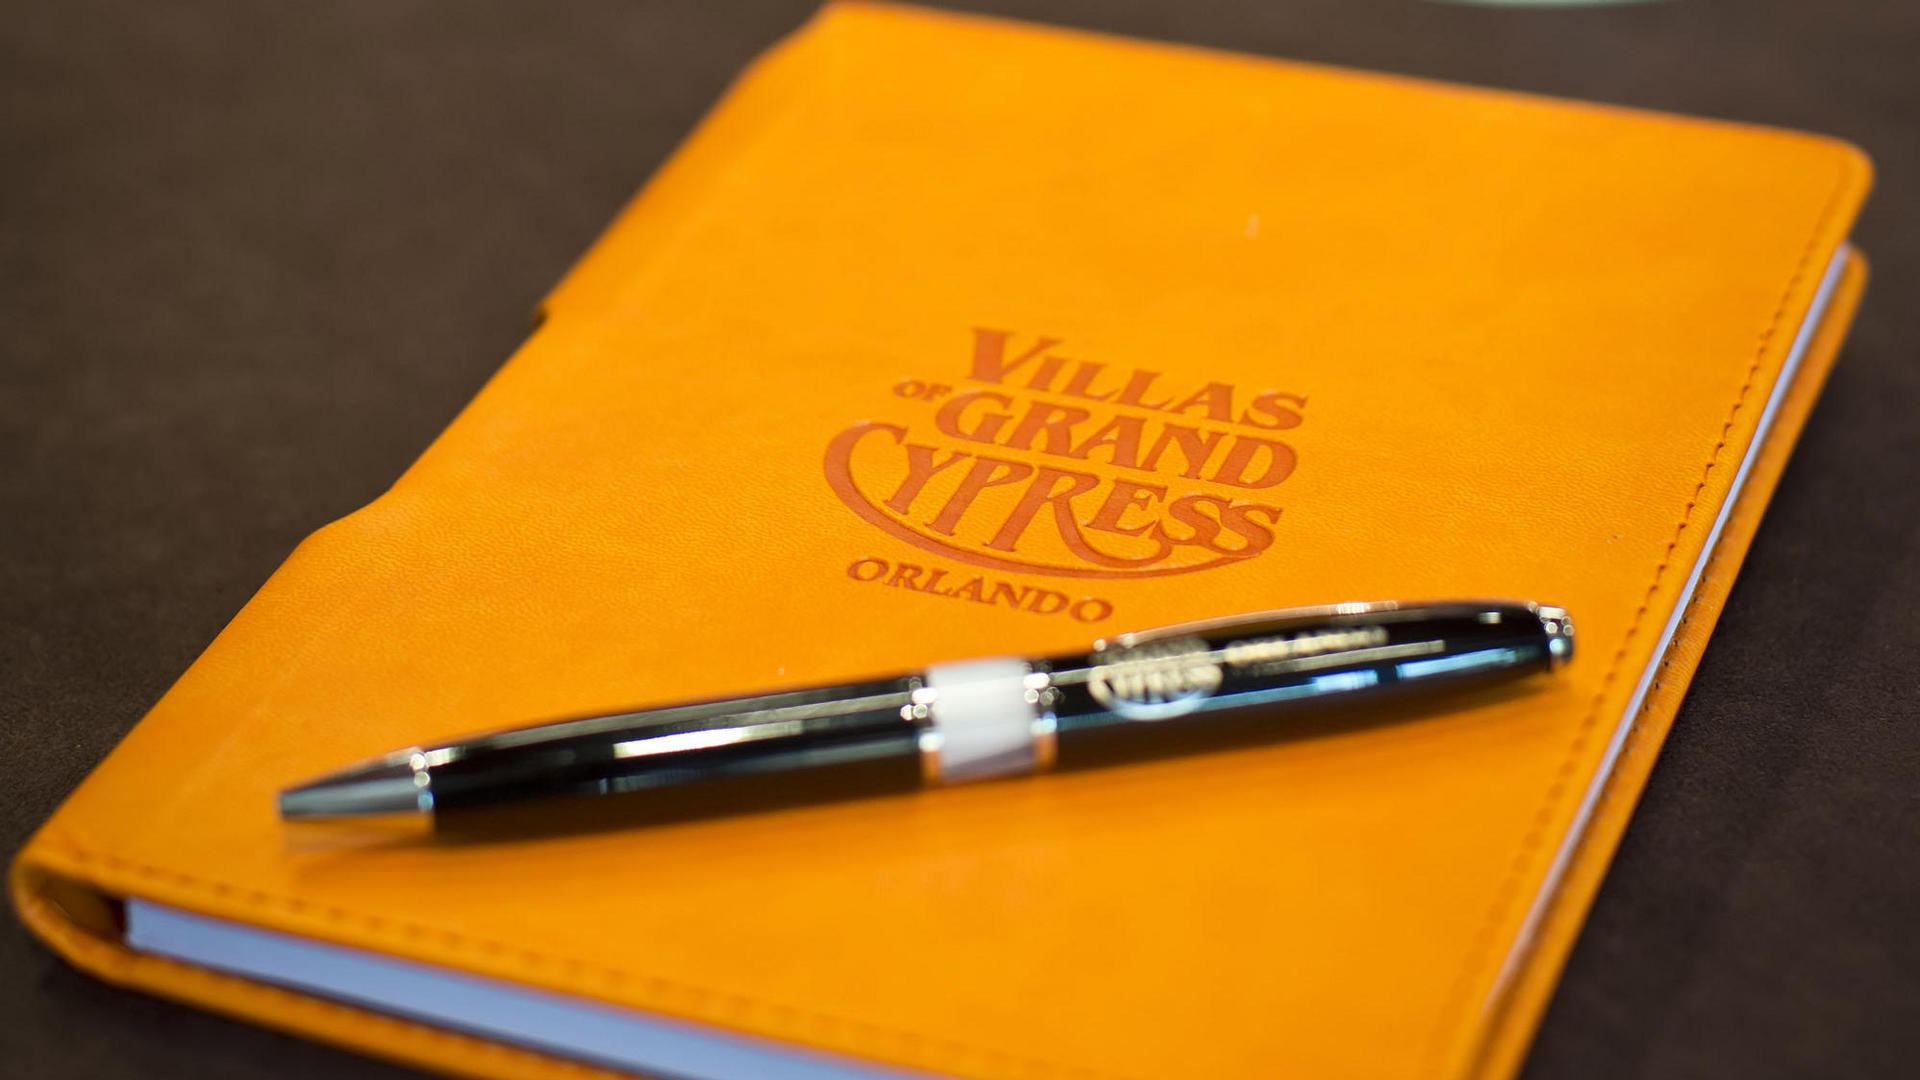 Grand Cypress Notepad For Orlando Meetings